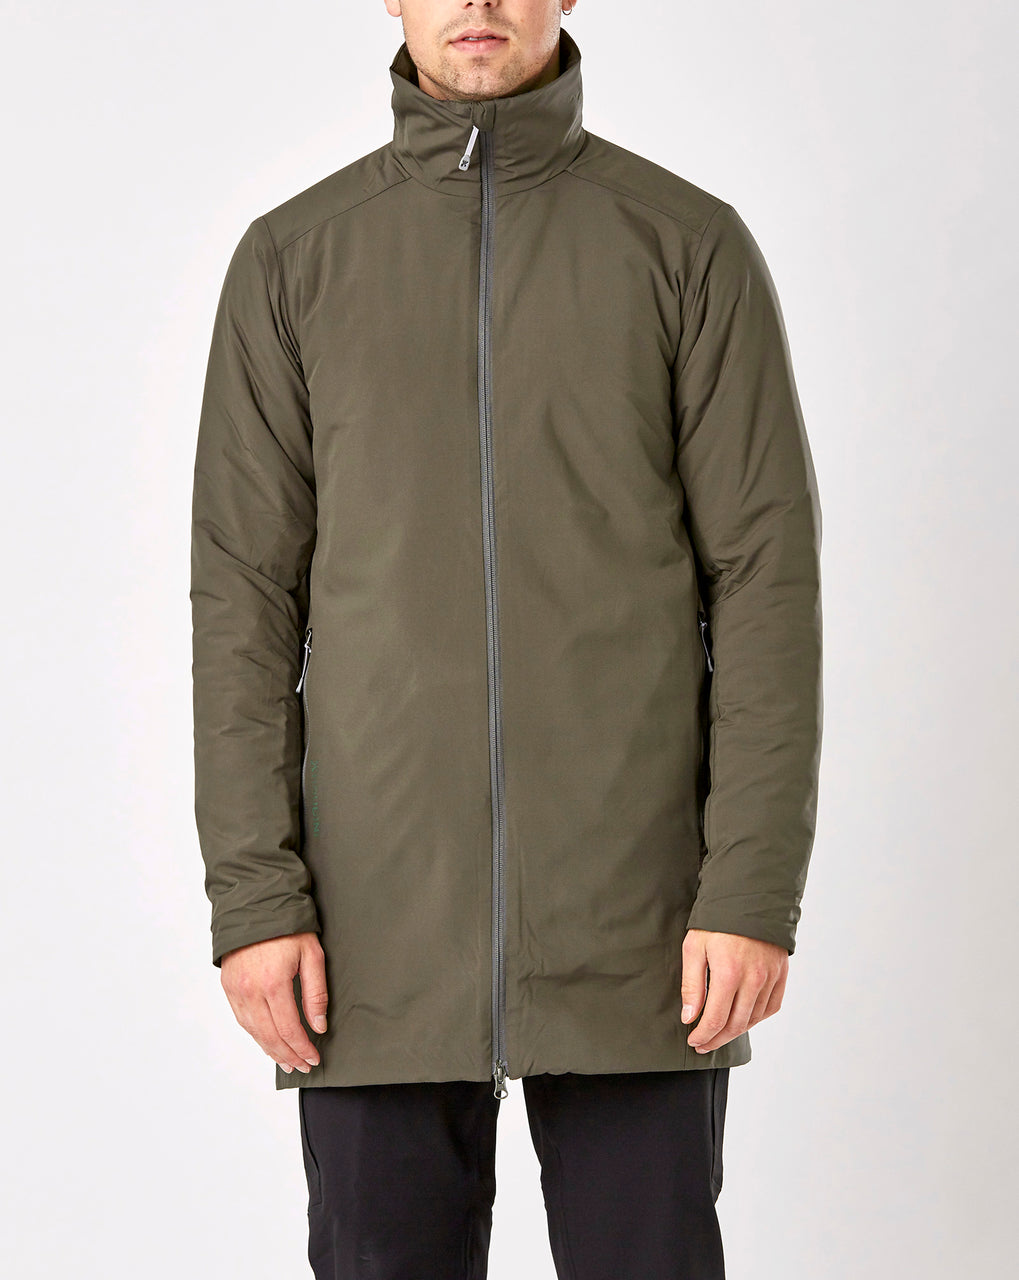 Houdini Add-in Jacket (Baremark Green)